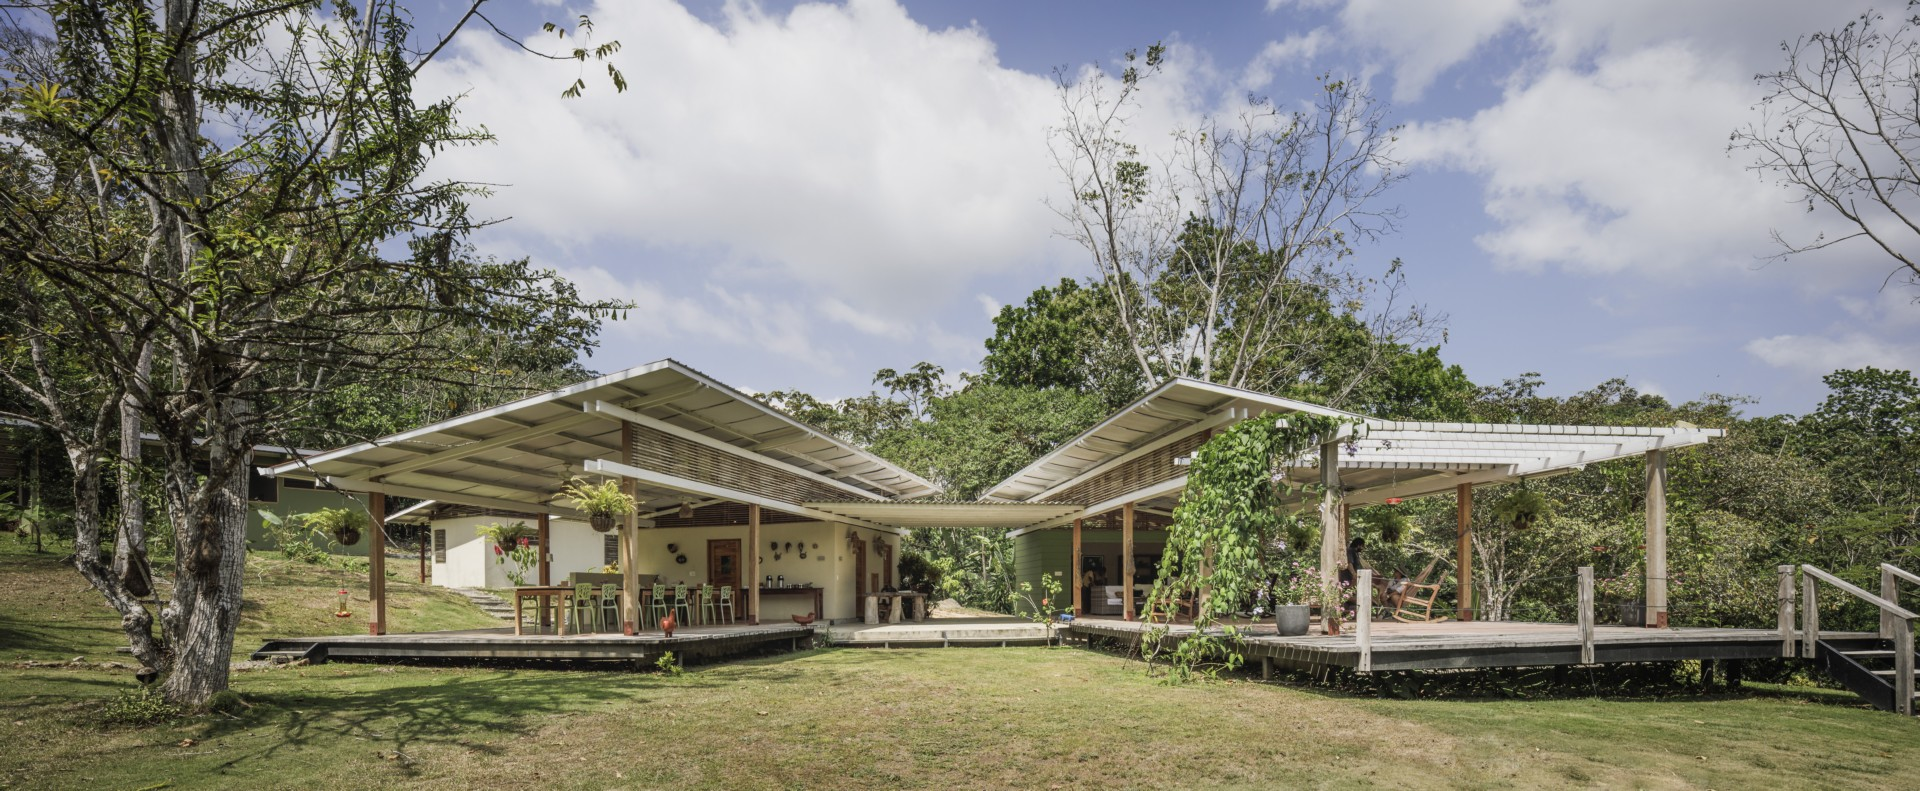 Canopy Camp Darien by Diego Cambefort and Diana Bernal